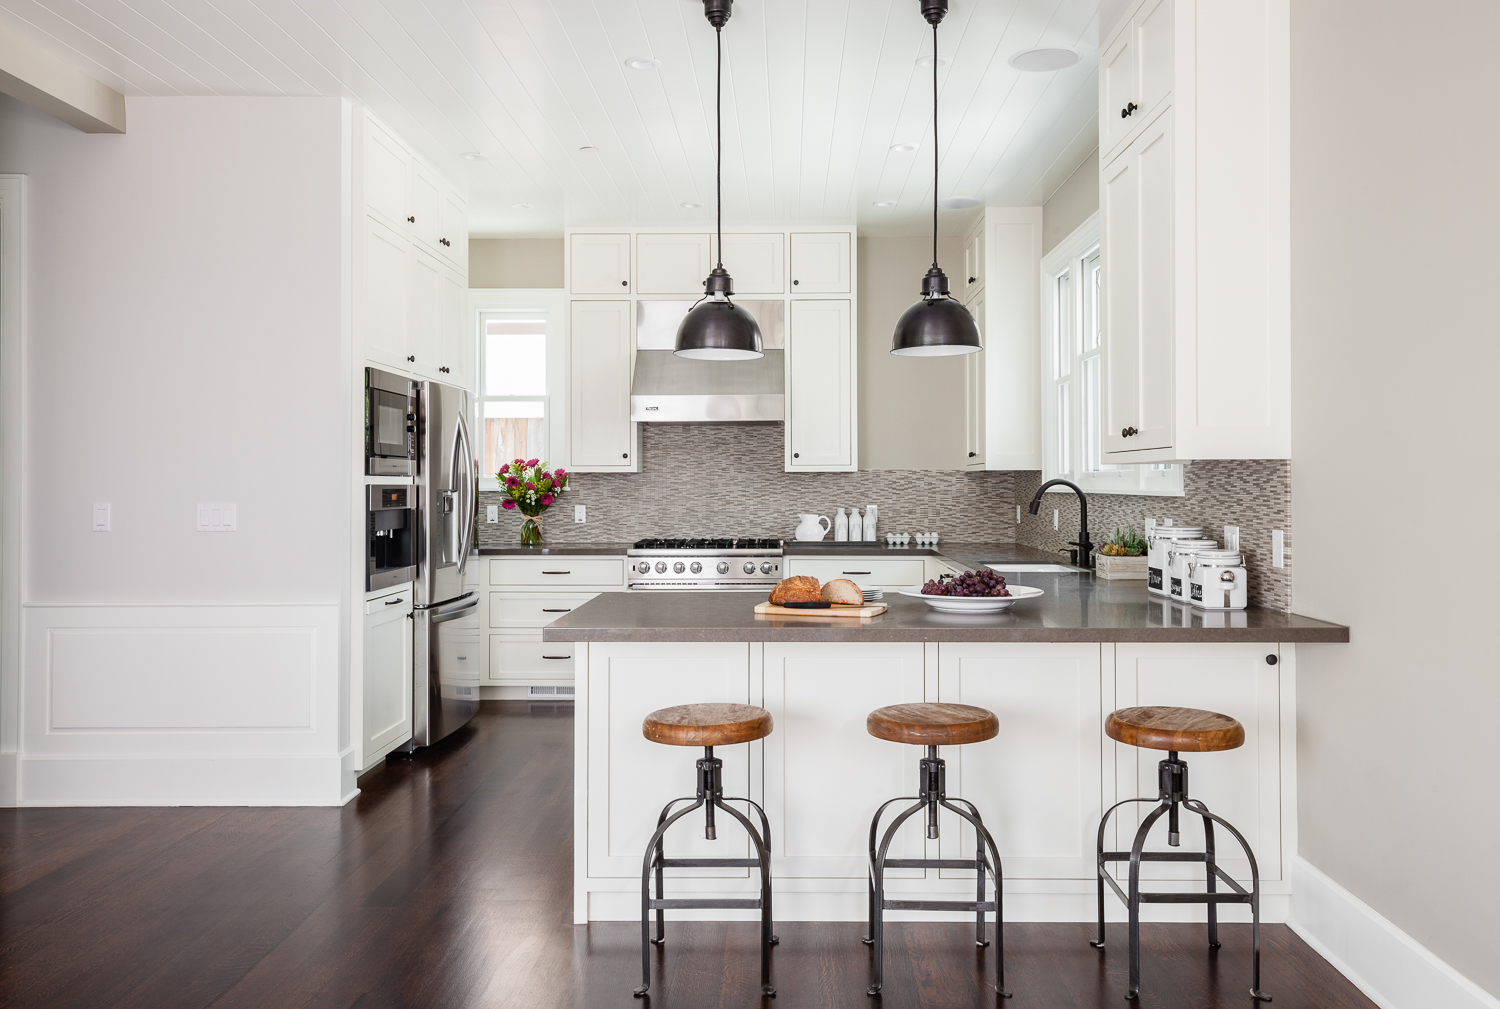 Palo Alto Remodel by Lindsey Chambers kitchen